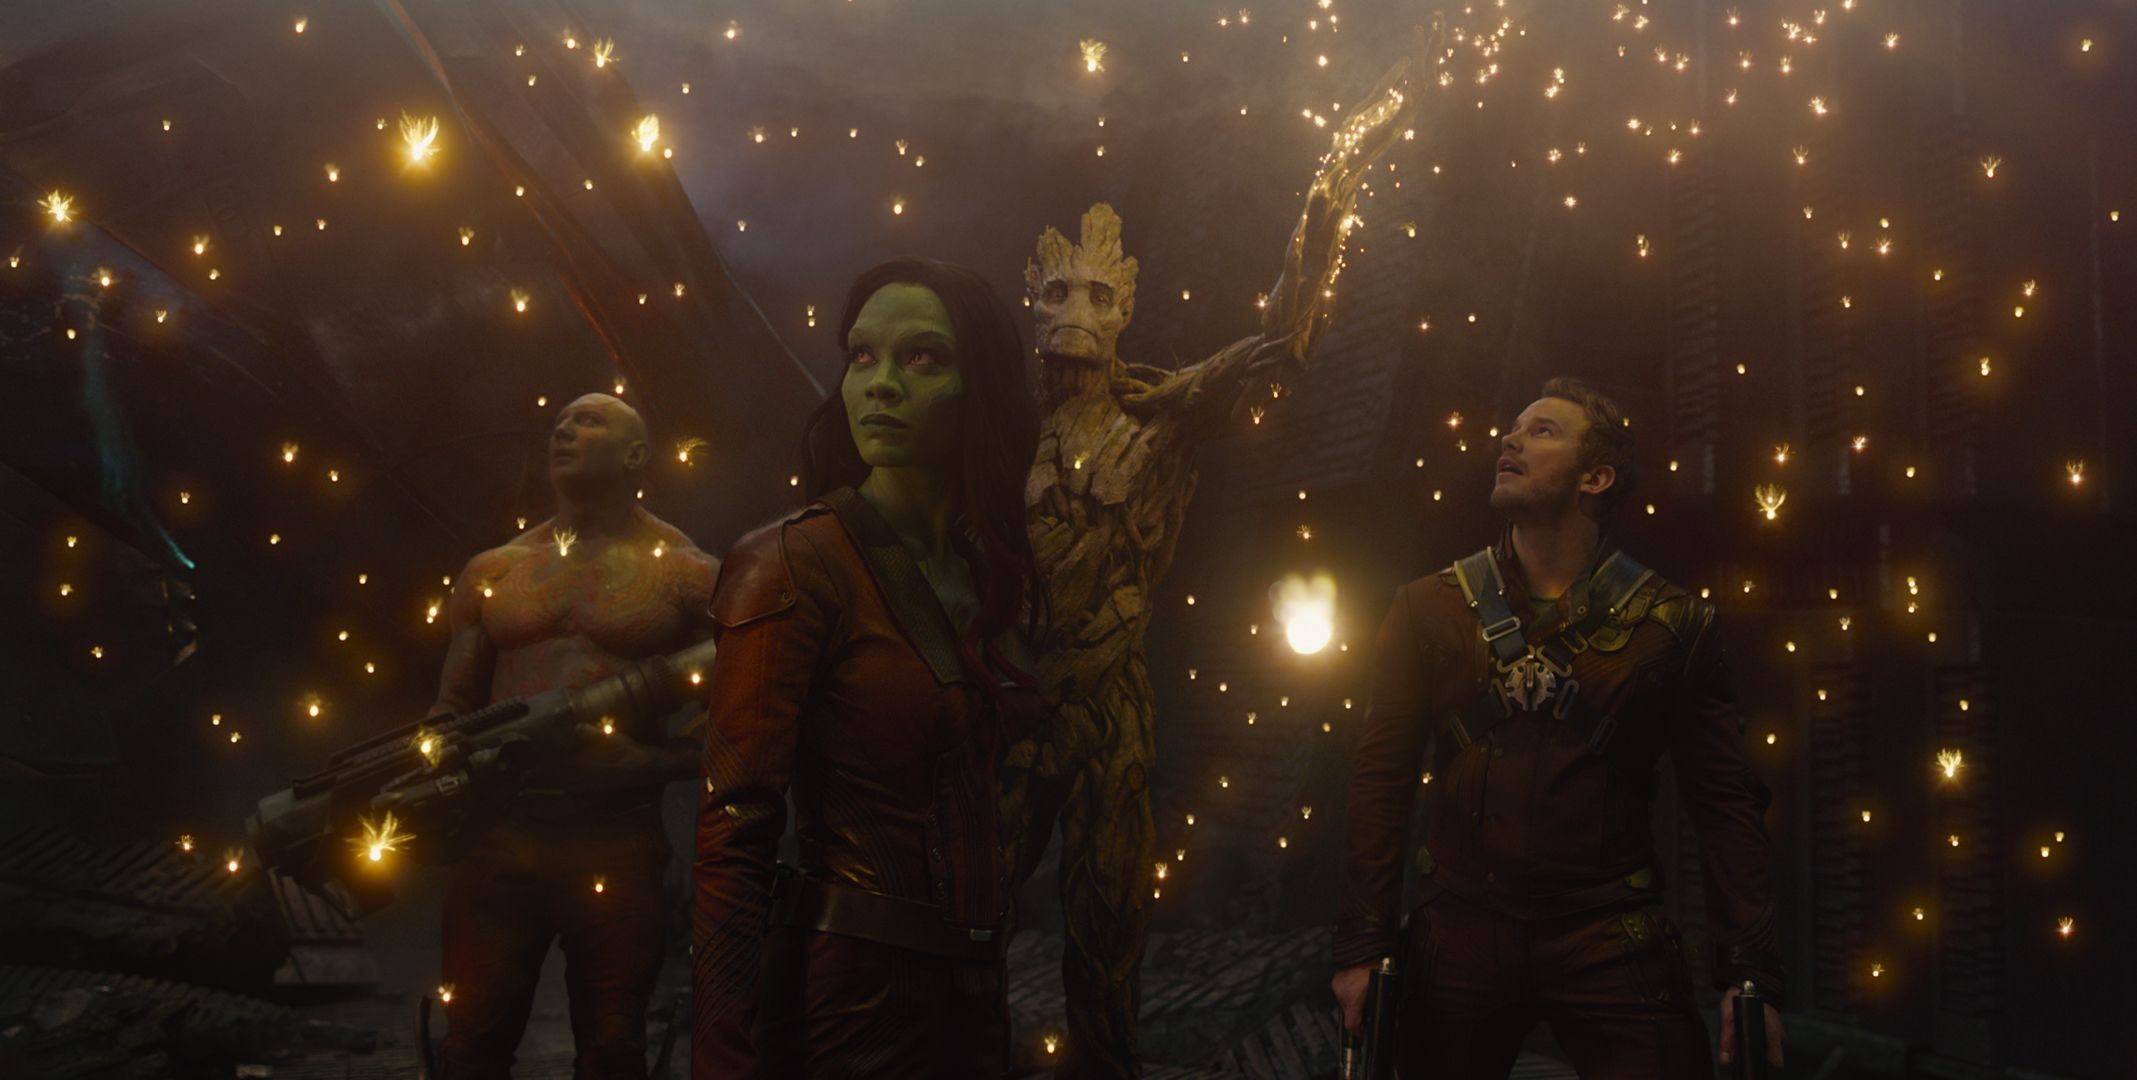 guardians-of-the-galaxy-movie-image.jpg